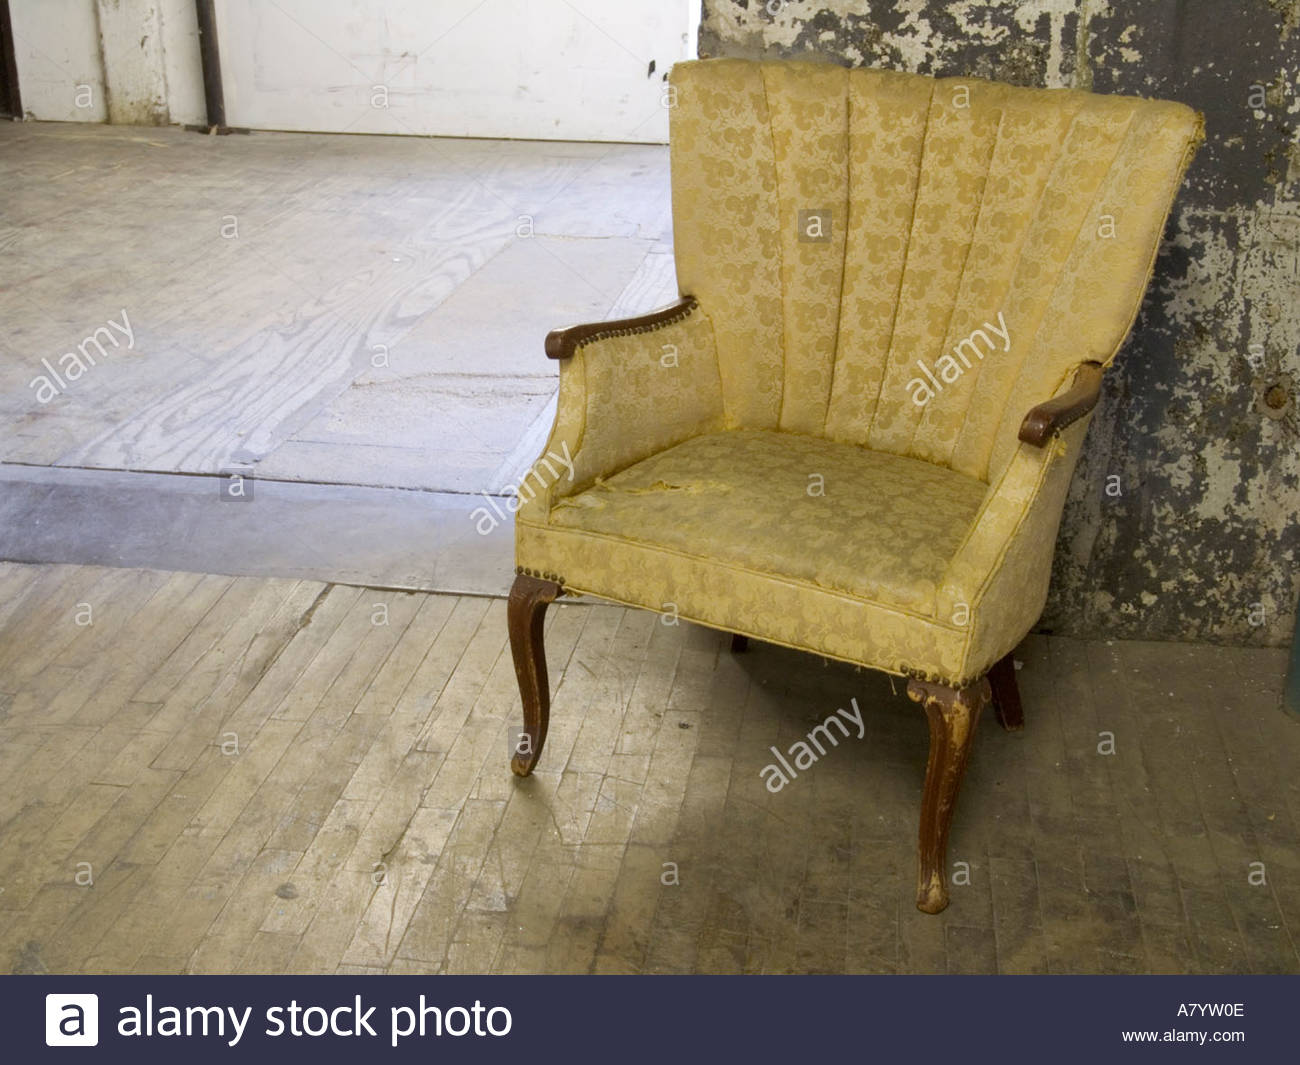 an old arm chair in the hallway of an old industrial building - Stock Image